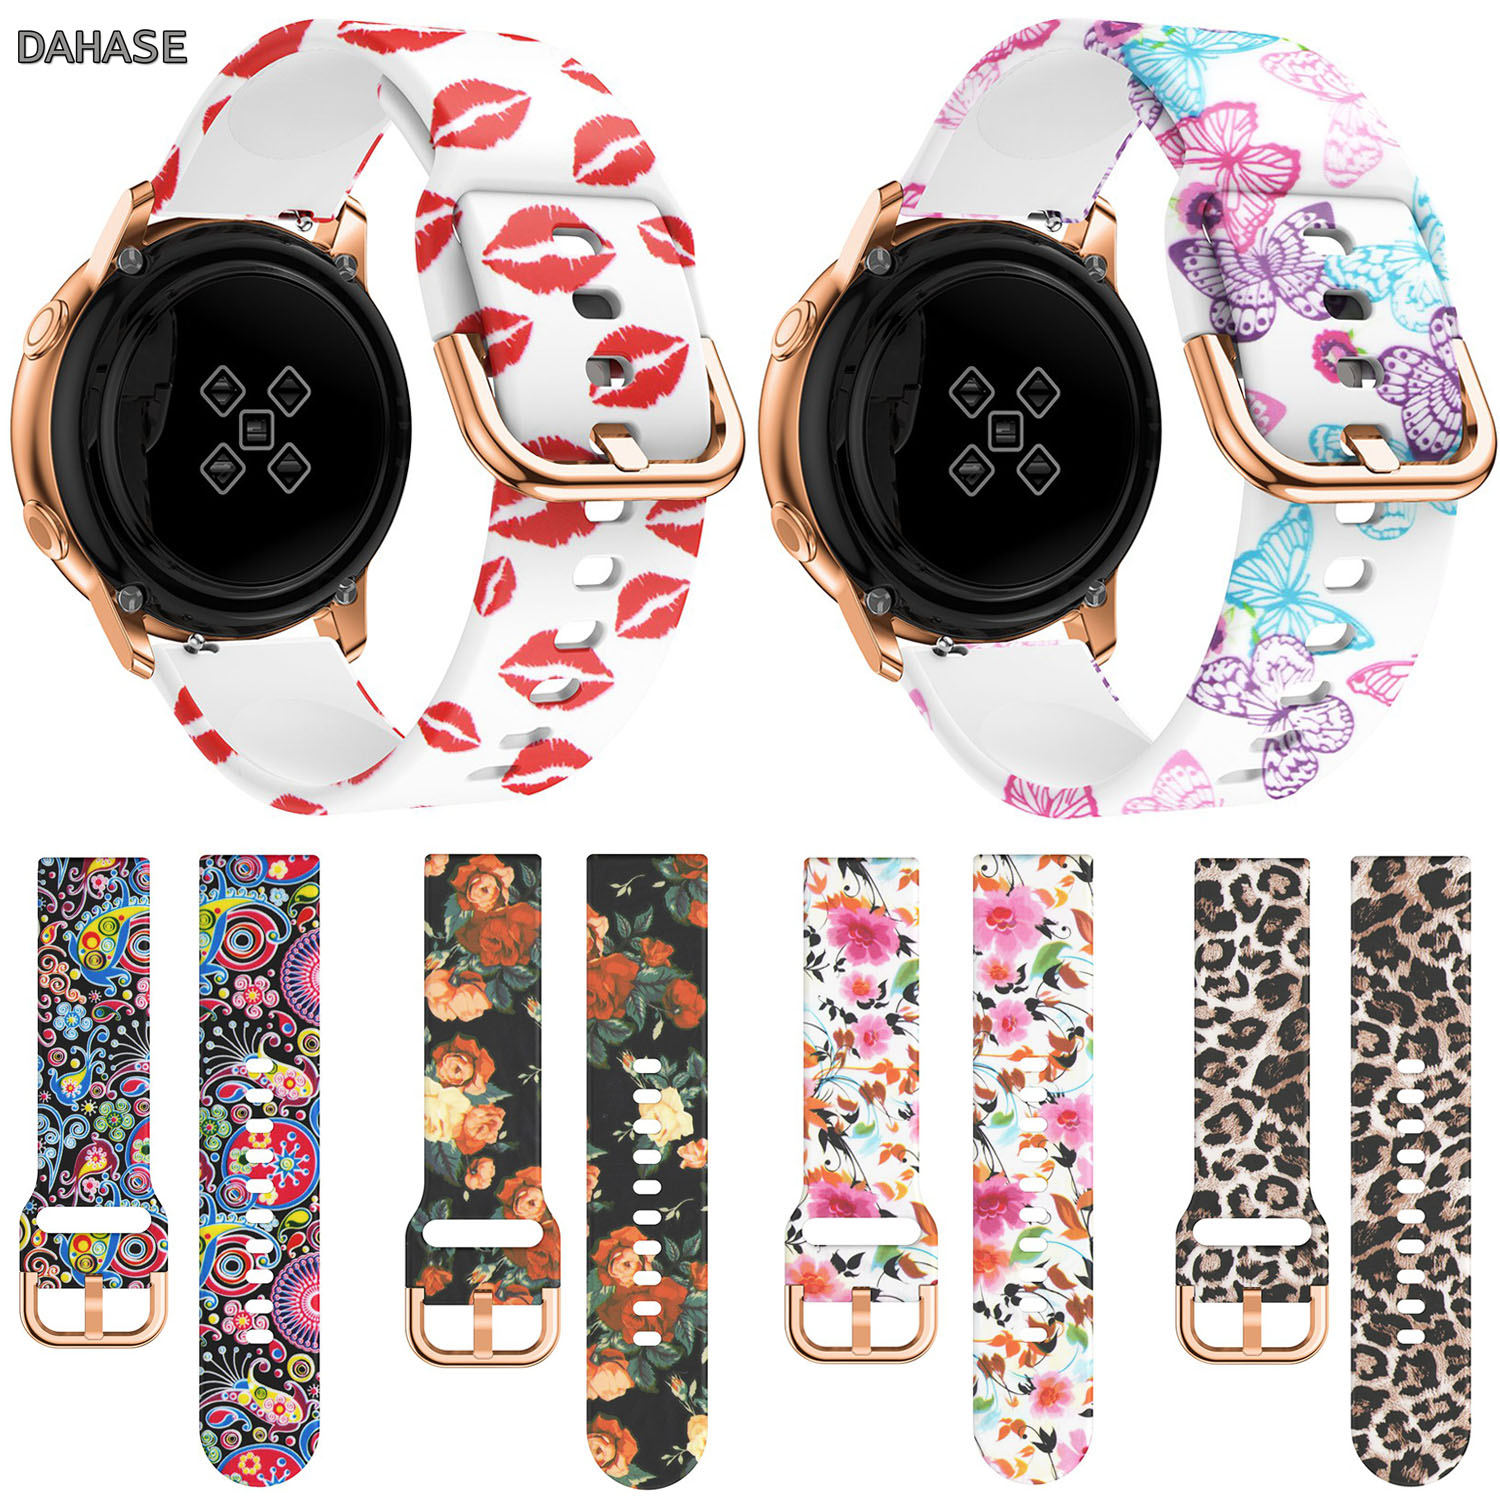 20mm Watch Band For Samsung Galaxy Watch Active Band Galaxy Watch 42mm Strap S2 Gear Sport Silicone Wristband Watch Strap Belt